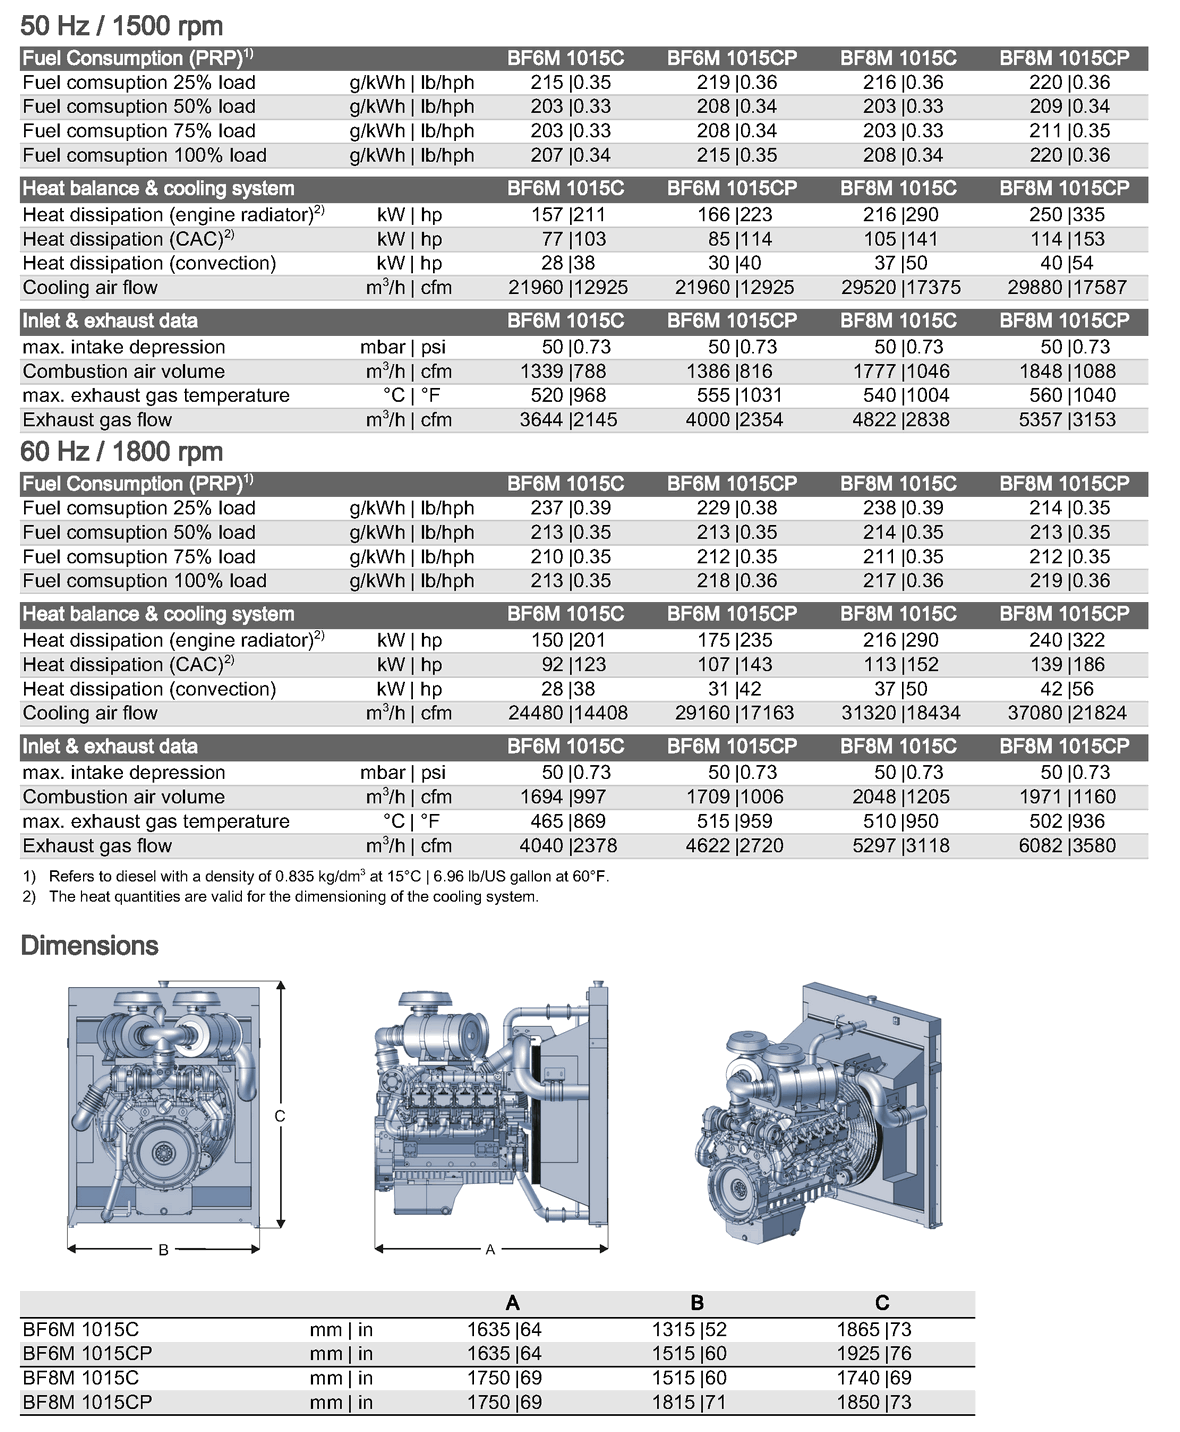 spec_engineBFM_1015_Genset_EN_250-517kw_2.png